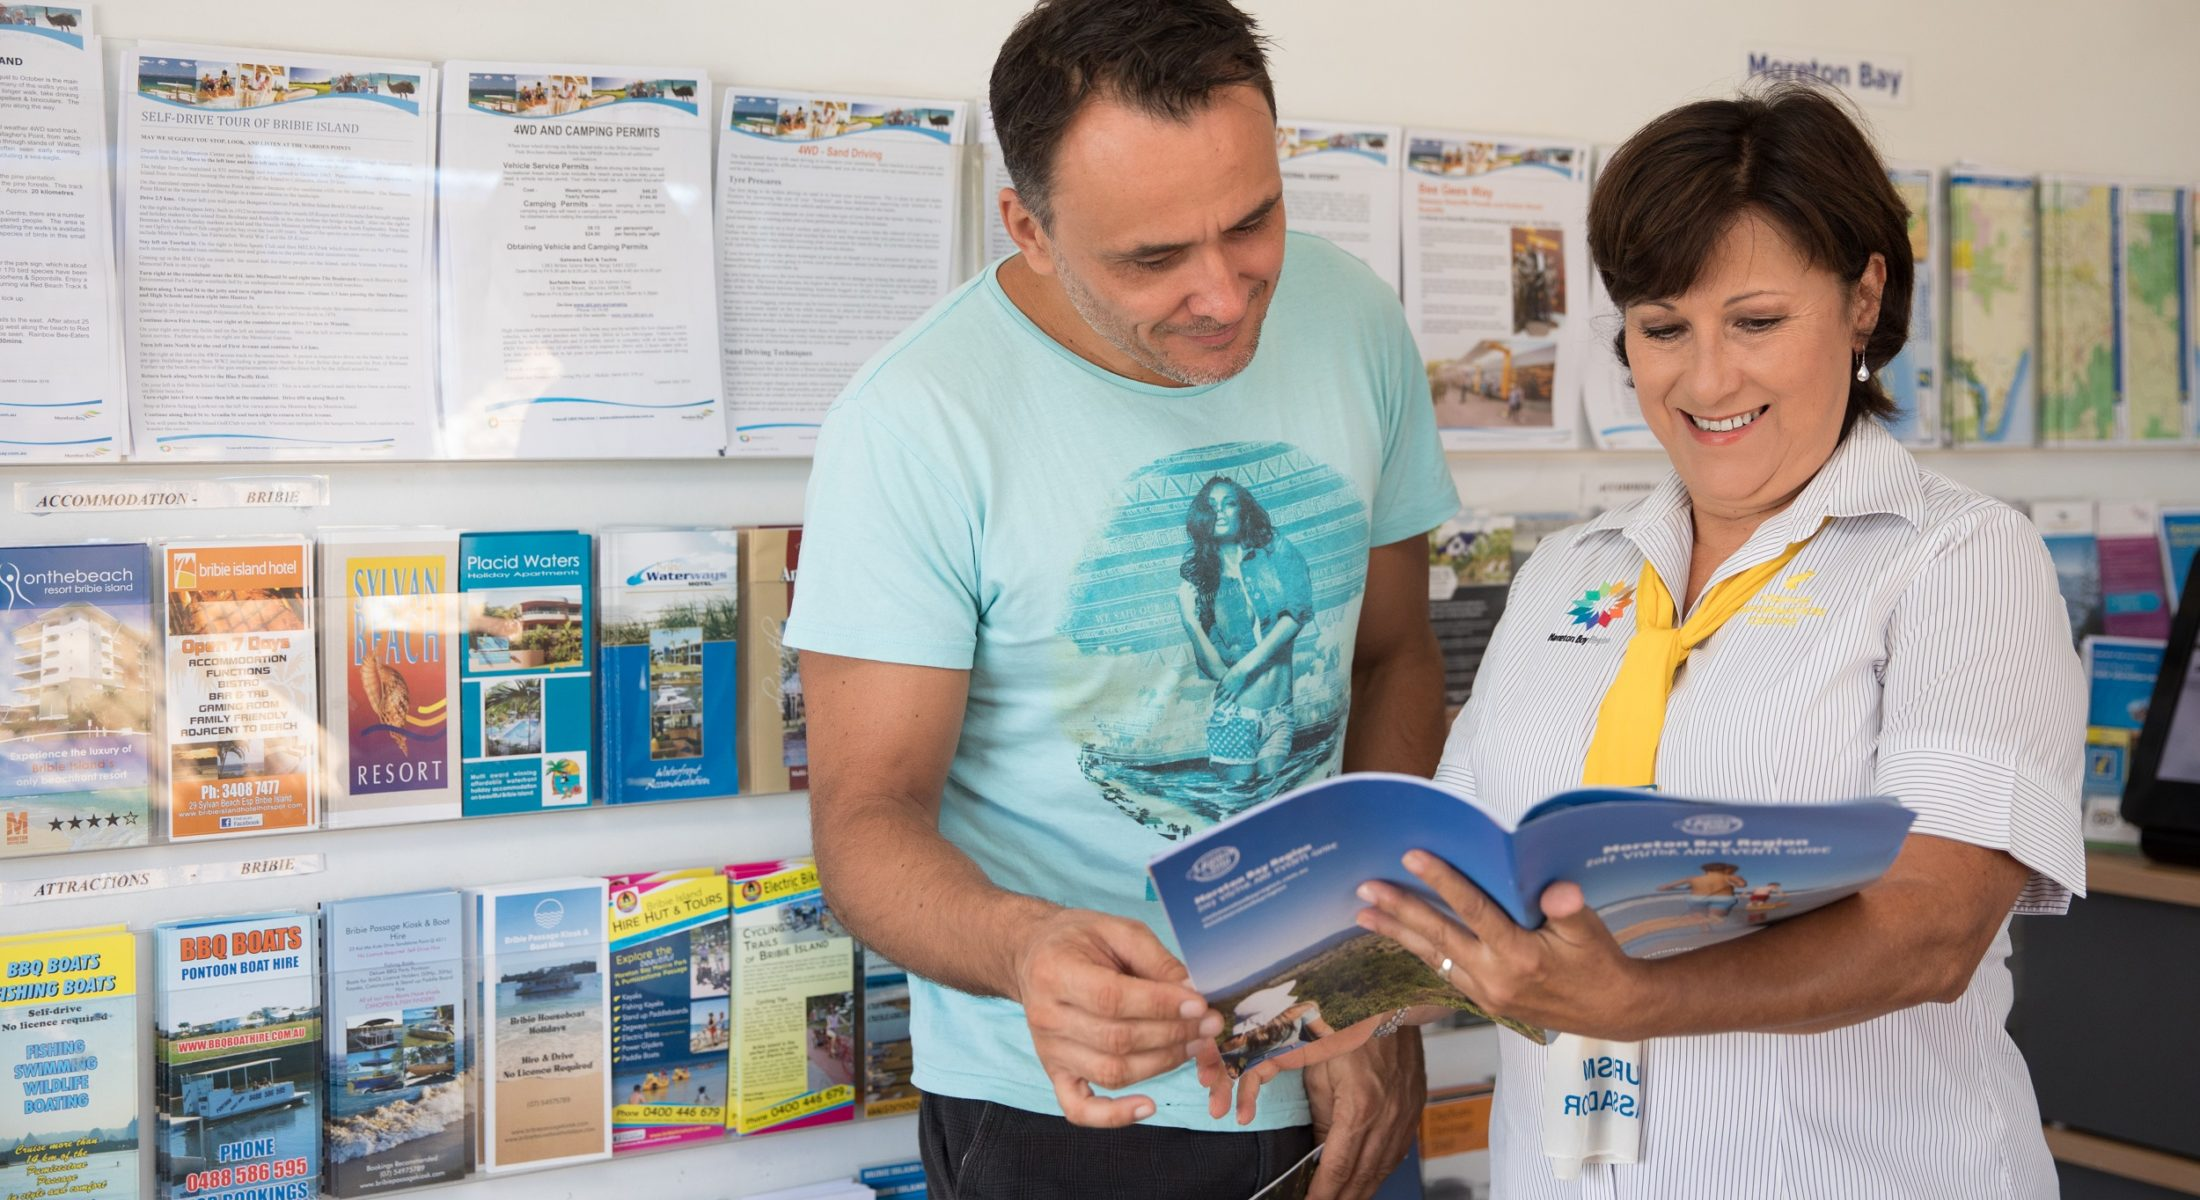 Rita Bribie Volunteer Visitor Information Centre Moreton Bay Region